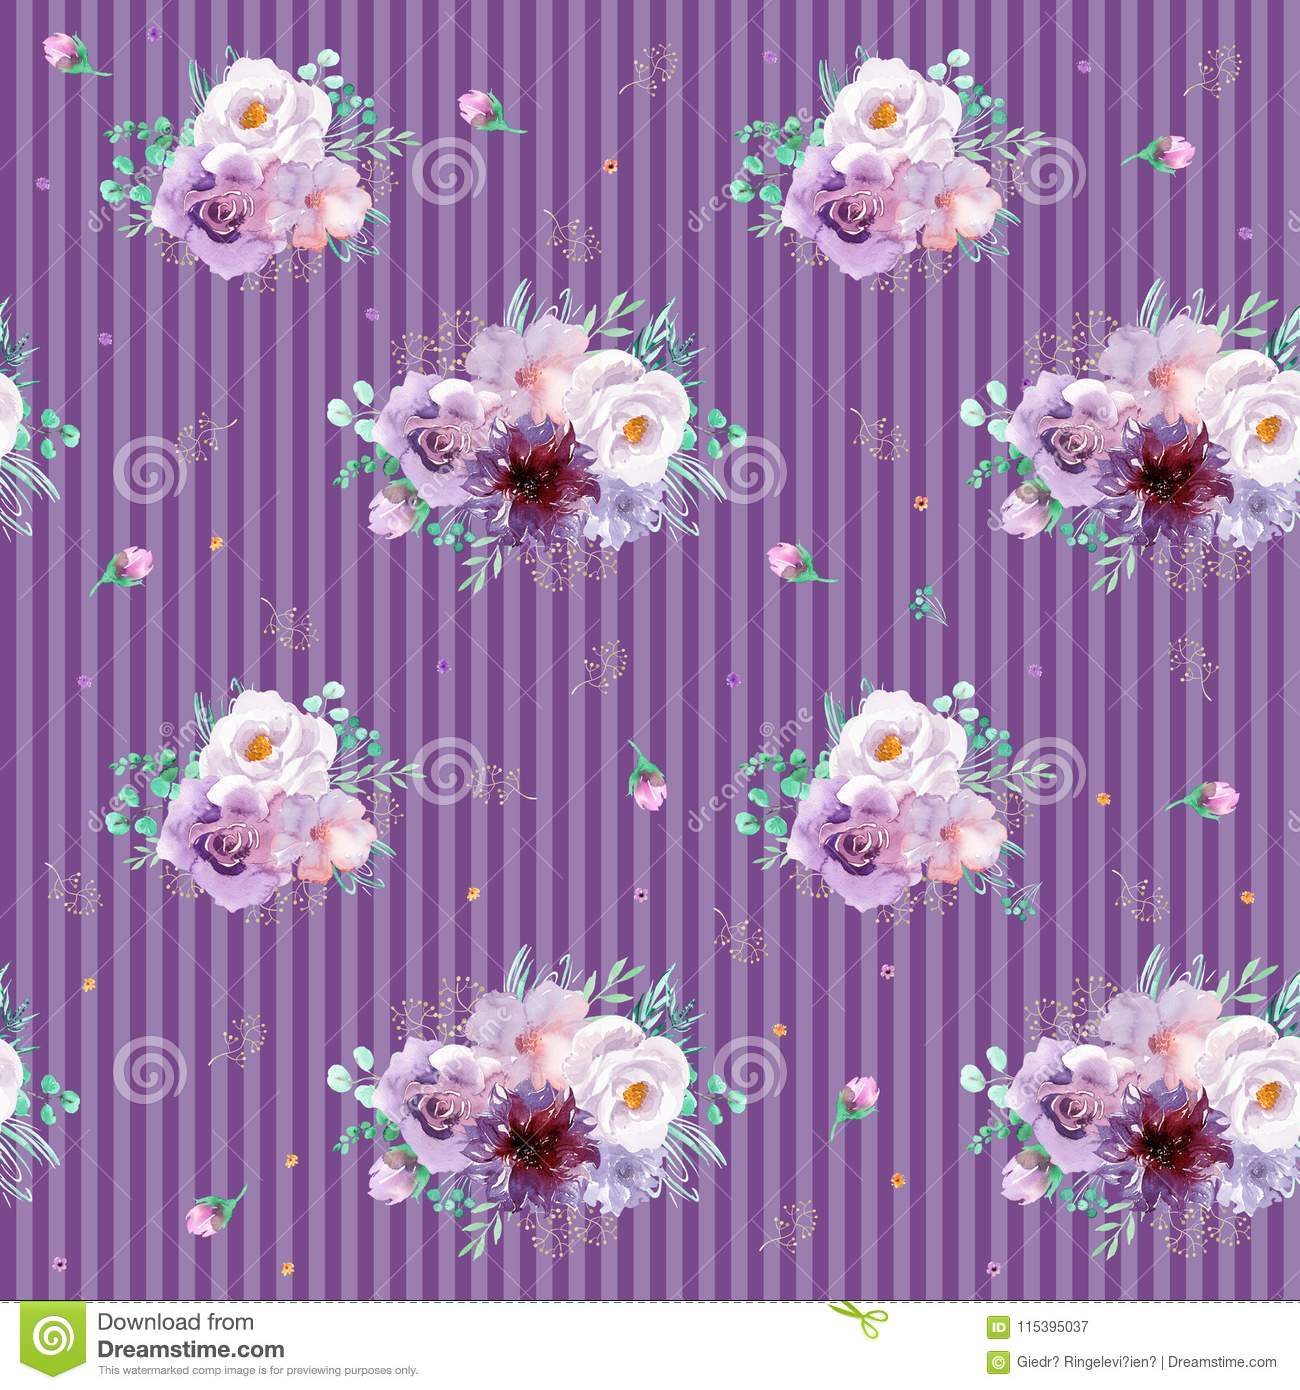 Watercolor Seamless Floral Background In Purple And Mint Green